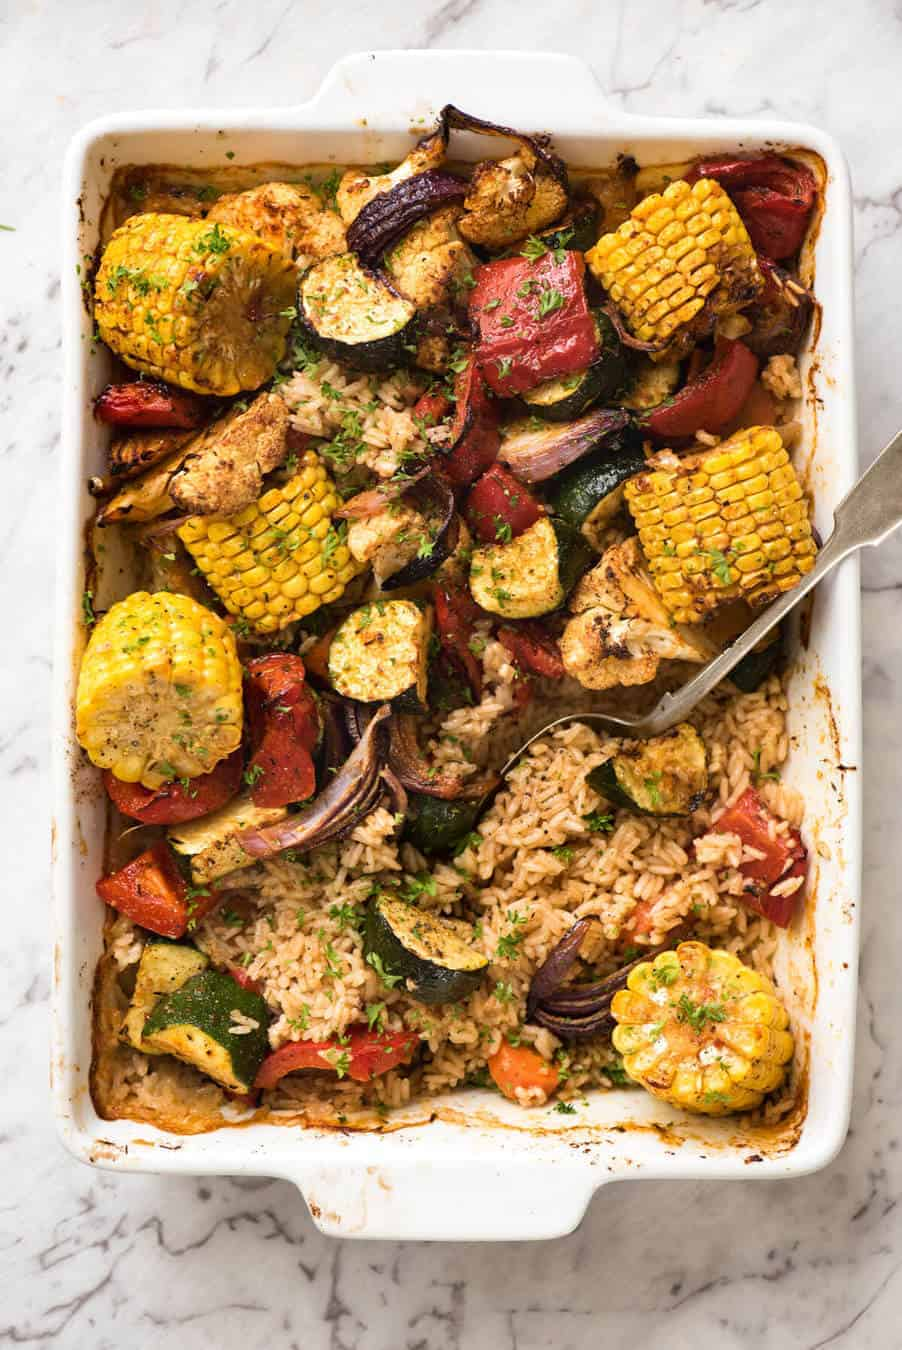 Oven baked rice and vegetables one pan recipetin eats oven baked rice and vegetables fluffy seasoned rice and oven roasted vegetables all made sciox Choice Image